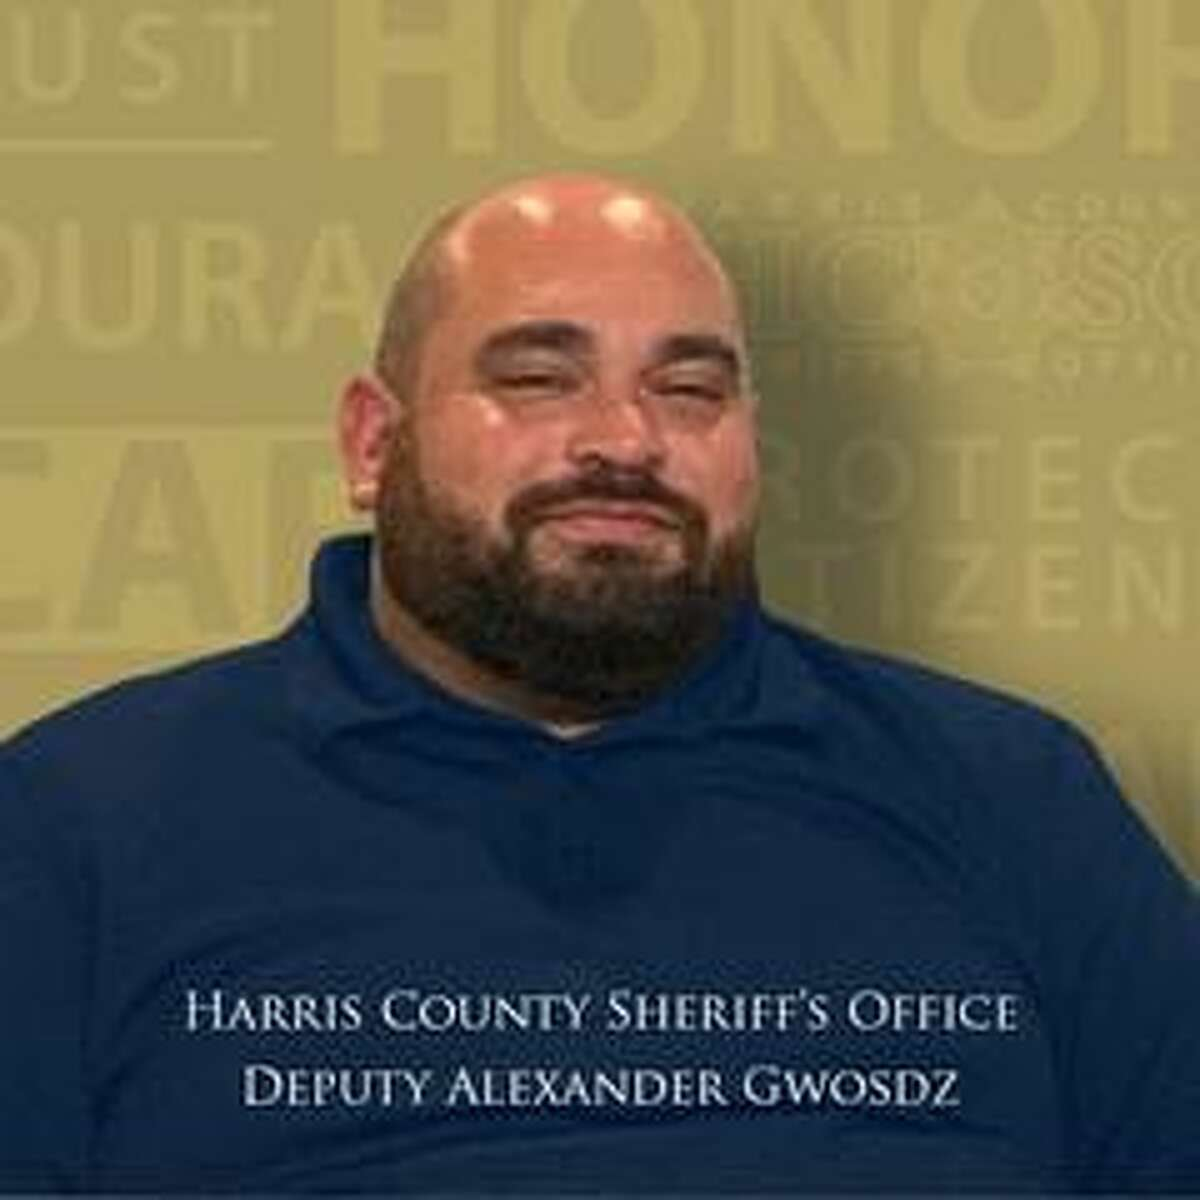 Harris County Sheriff's Dep. Alexander Gwosdz died Wednesday from complications related to COVID-19. He is the fifth employee of the sheriff's office to die from the disease.